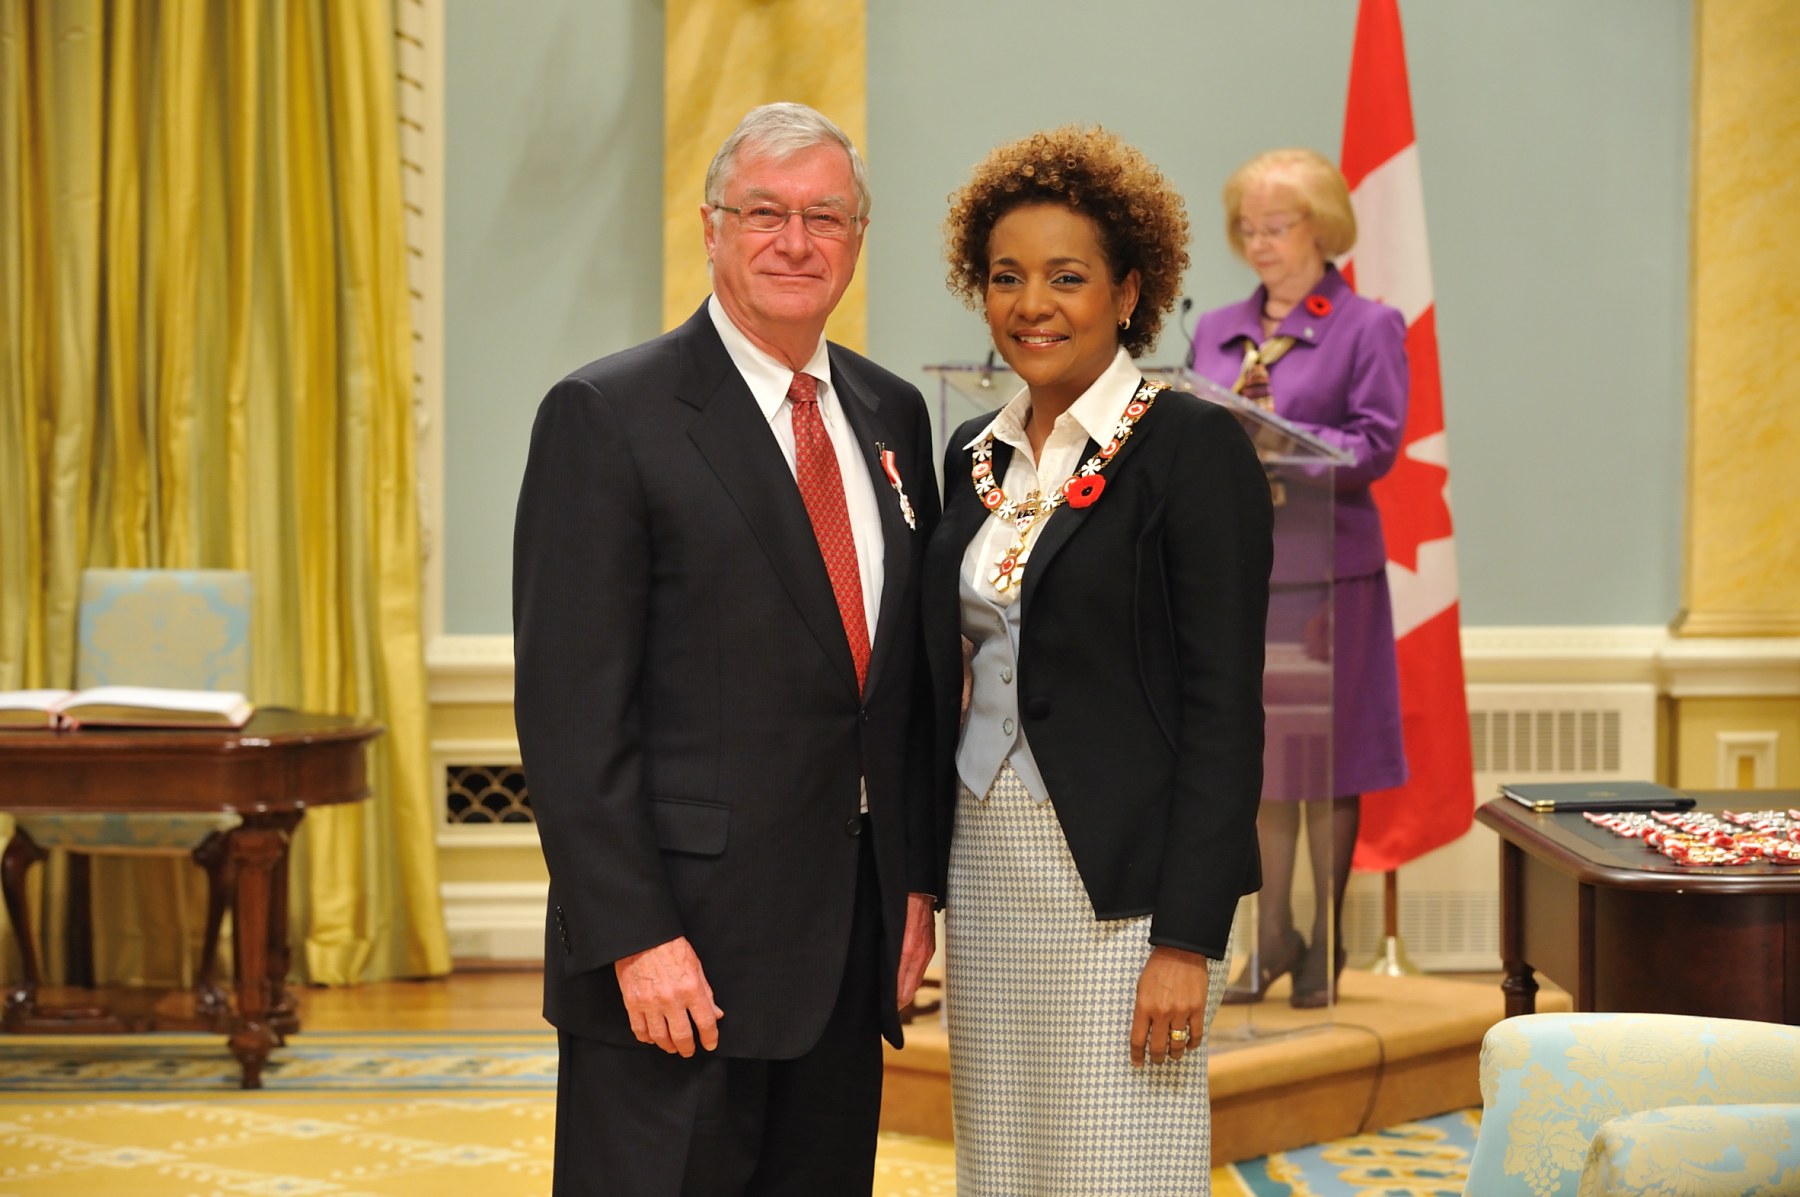 Her Excellency the Right Honourable Michaëlle Jean, Governor General of Canada, presented the insignia of Member of the Order of Canada to Gordon Arnell, C.M. For more than three decades, he has shown vision and leadership within the real estate.